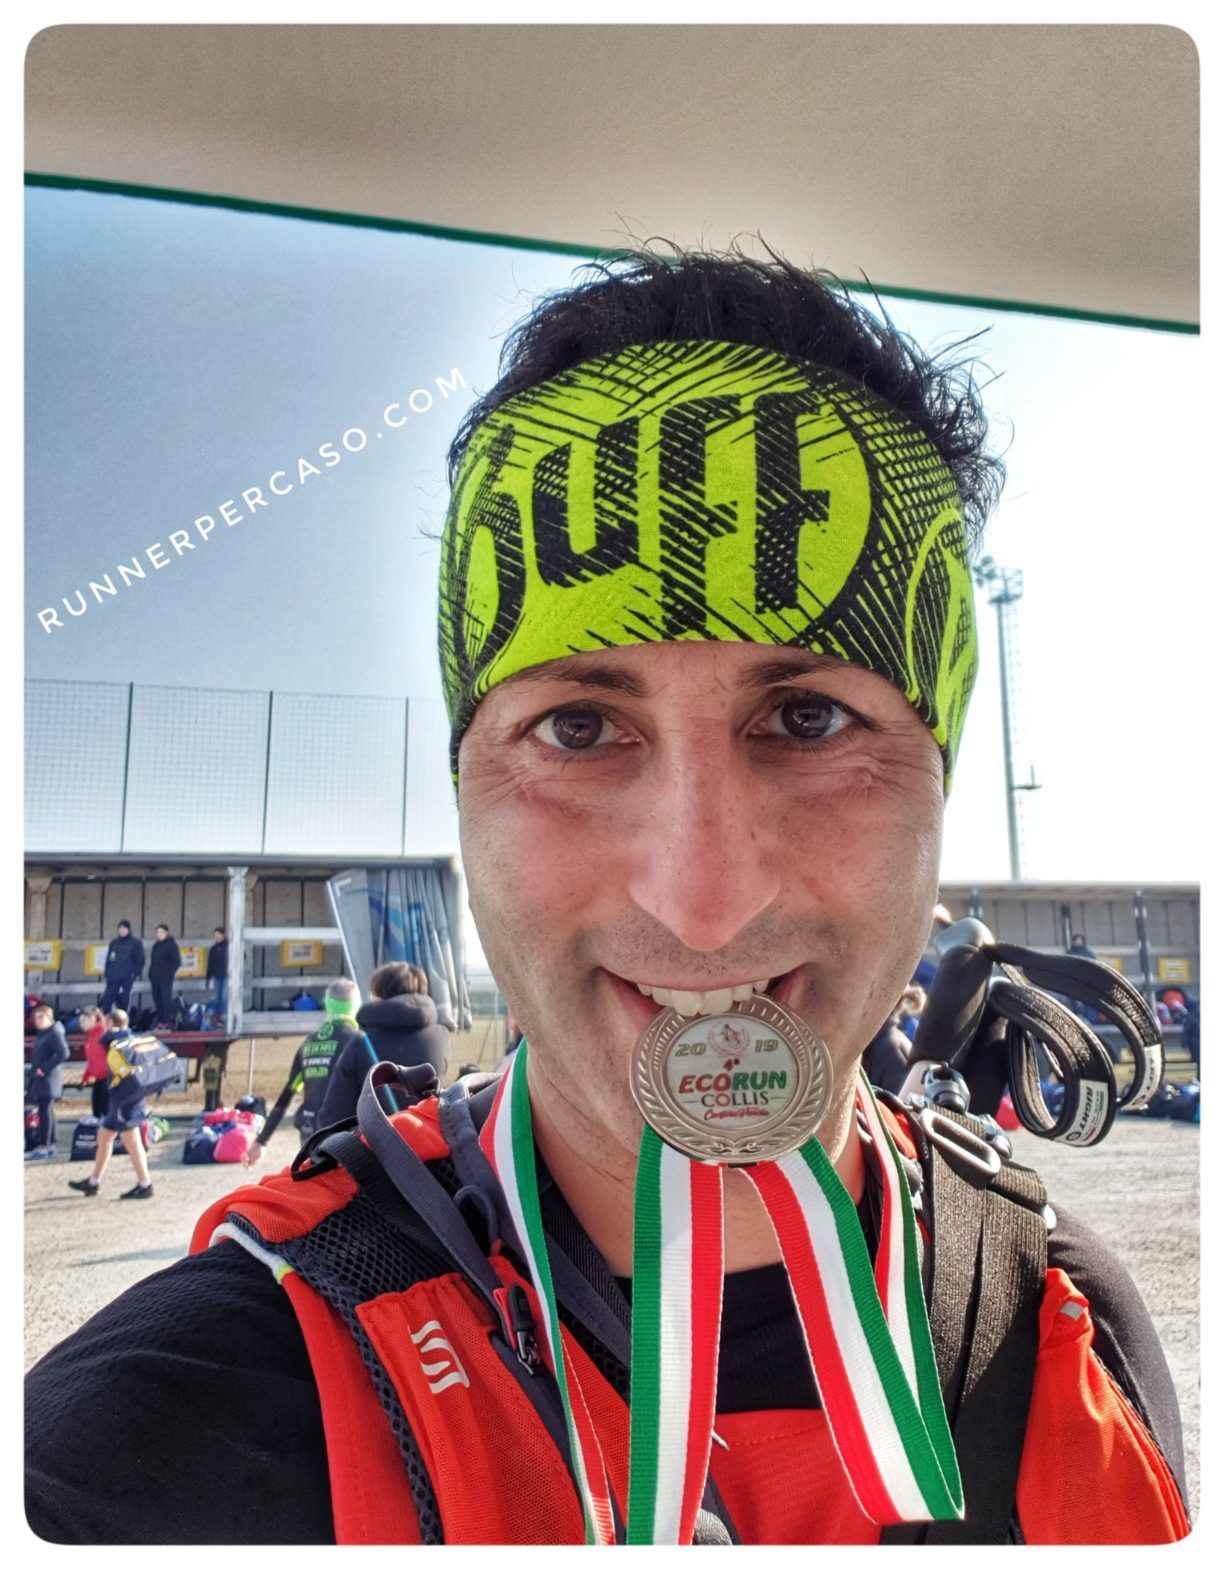 runnerpercaso finisher ecorun 2019